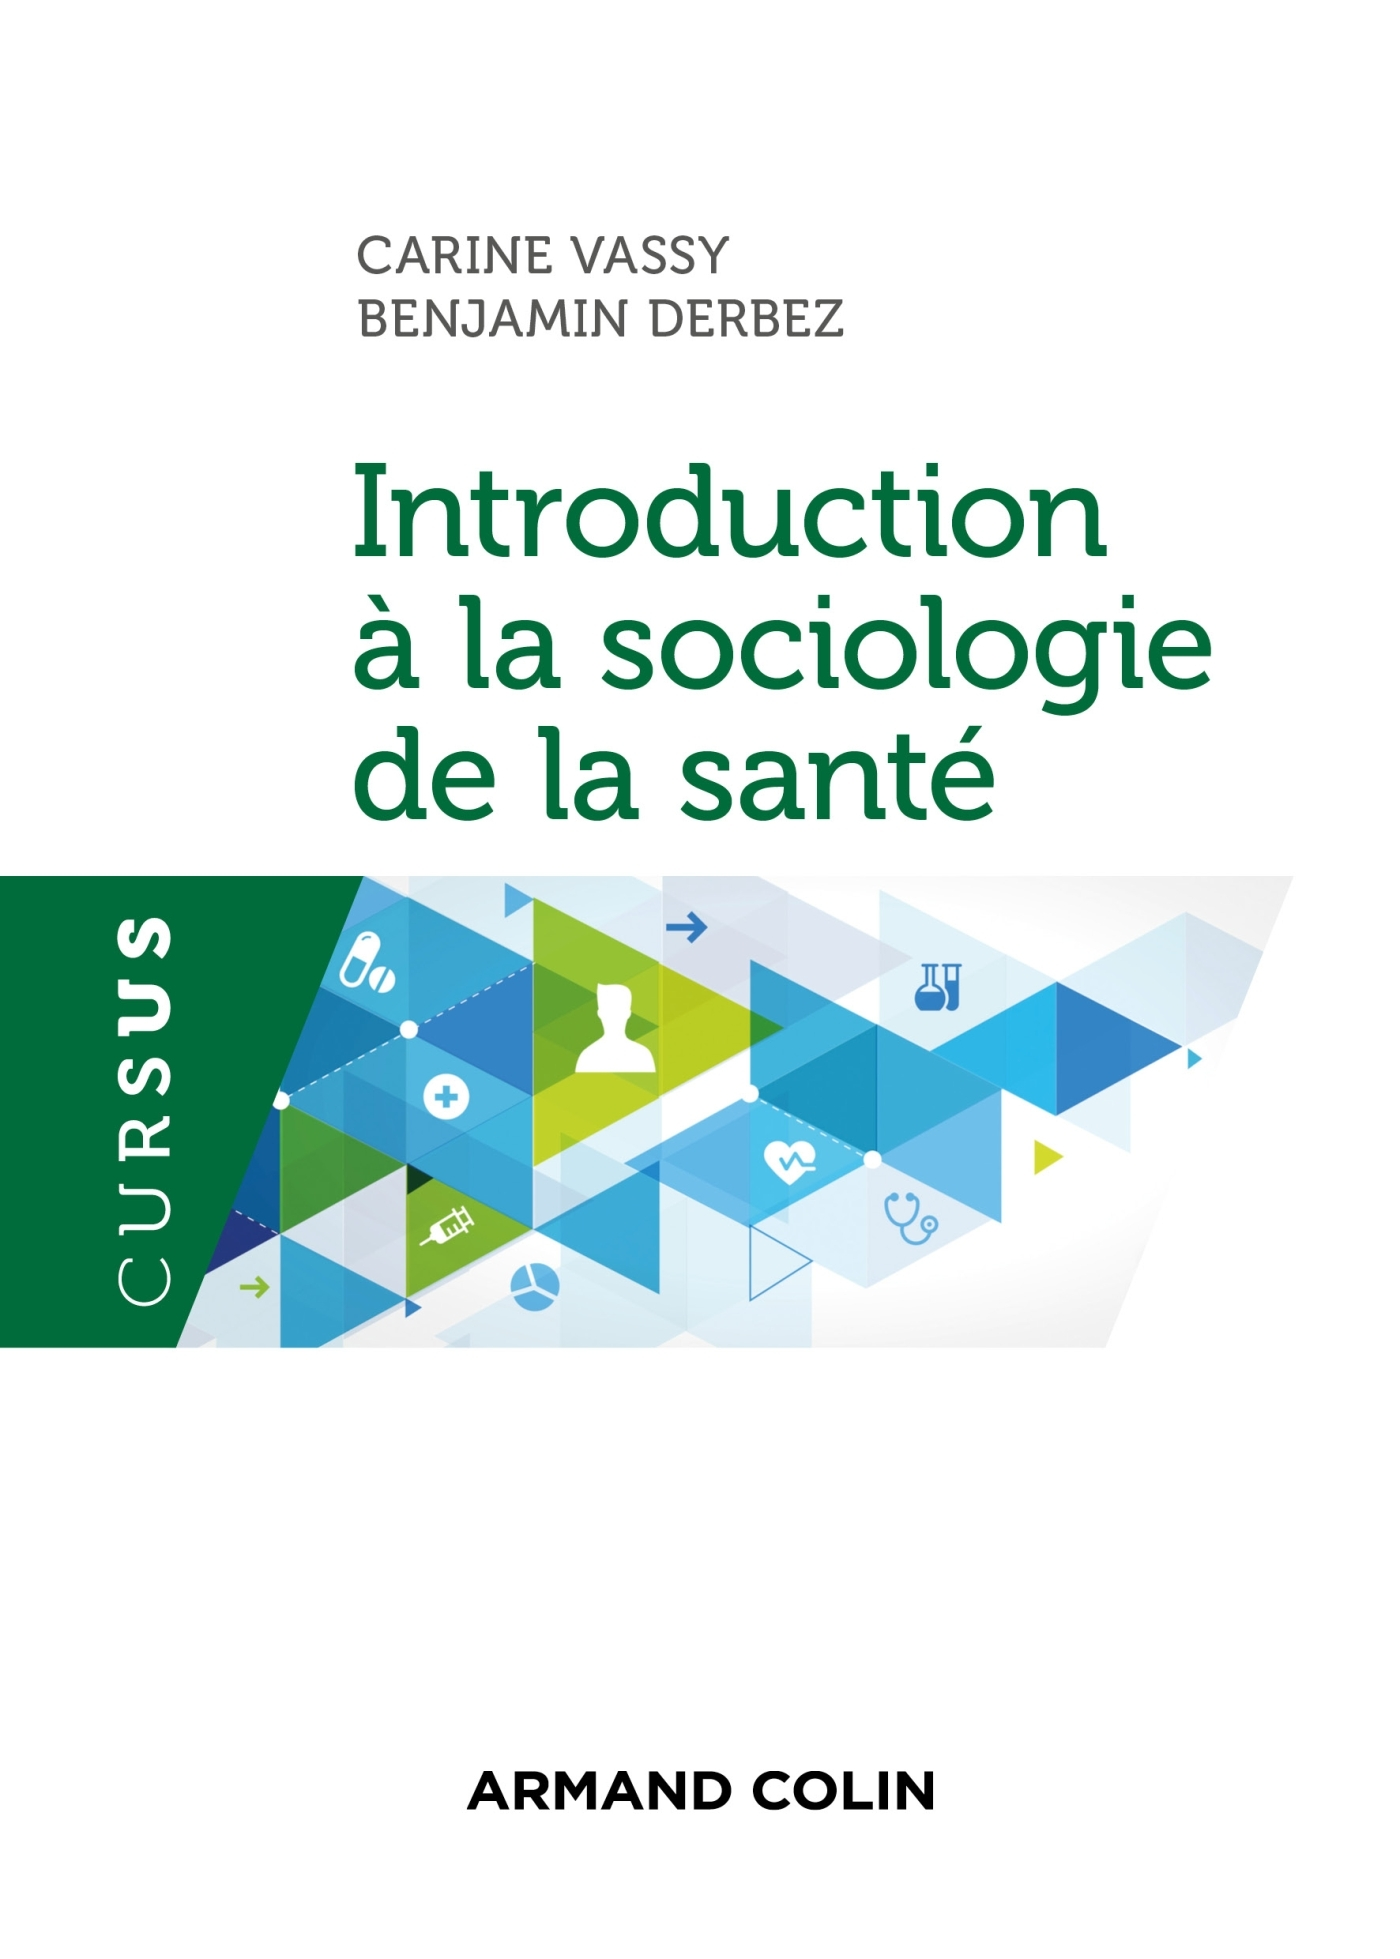 INTRODUCTION A LA SOCIOLOGIE DE LA SANTE